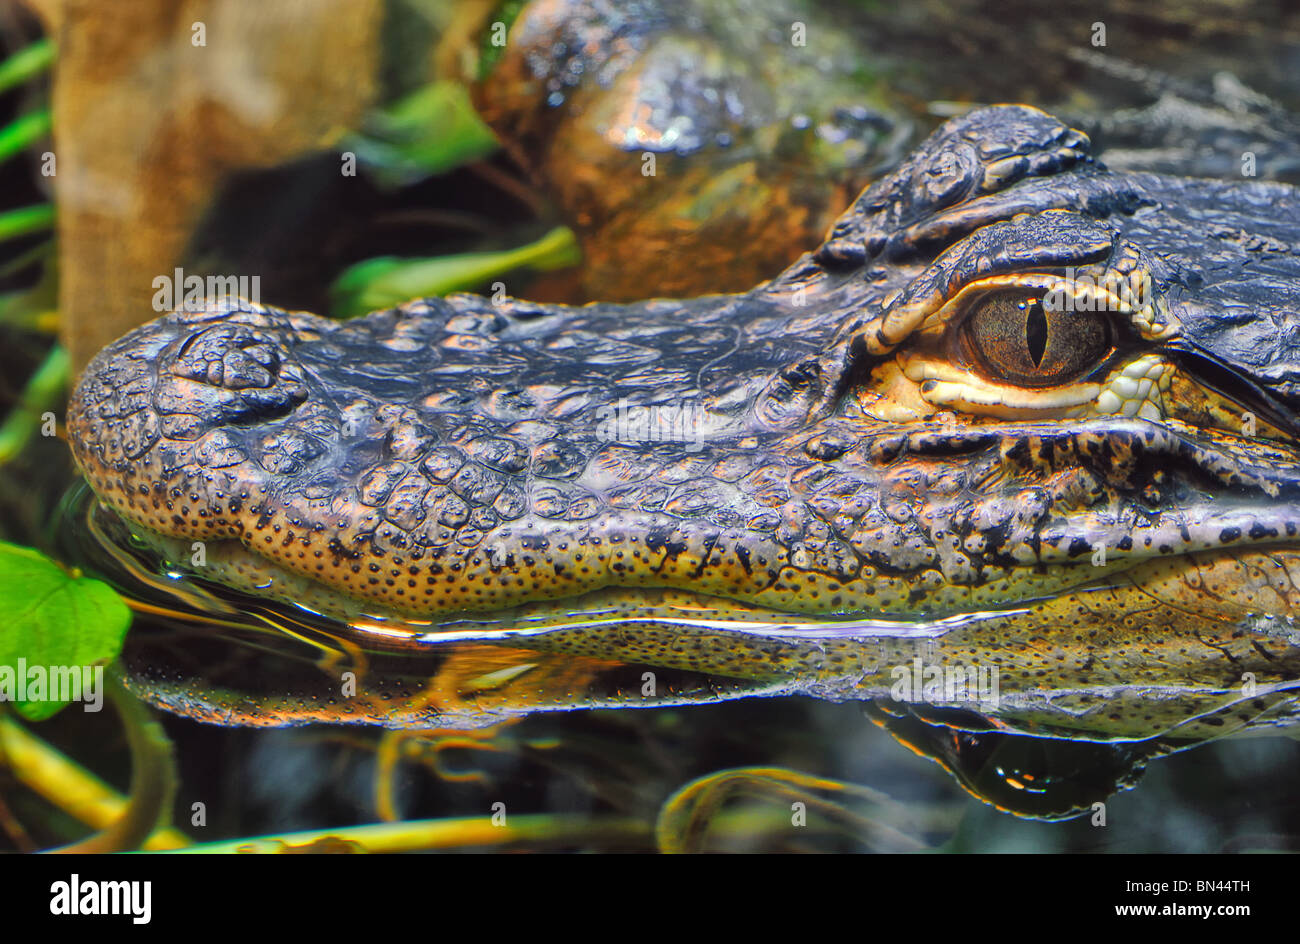 Head of a foot- long young Alligator (Alligator Mississippiensis) at Chattanooga Aquarium in Tennessee, USA Stock Photo